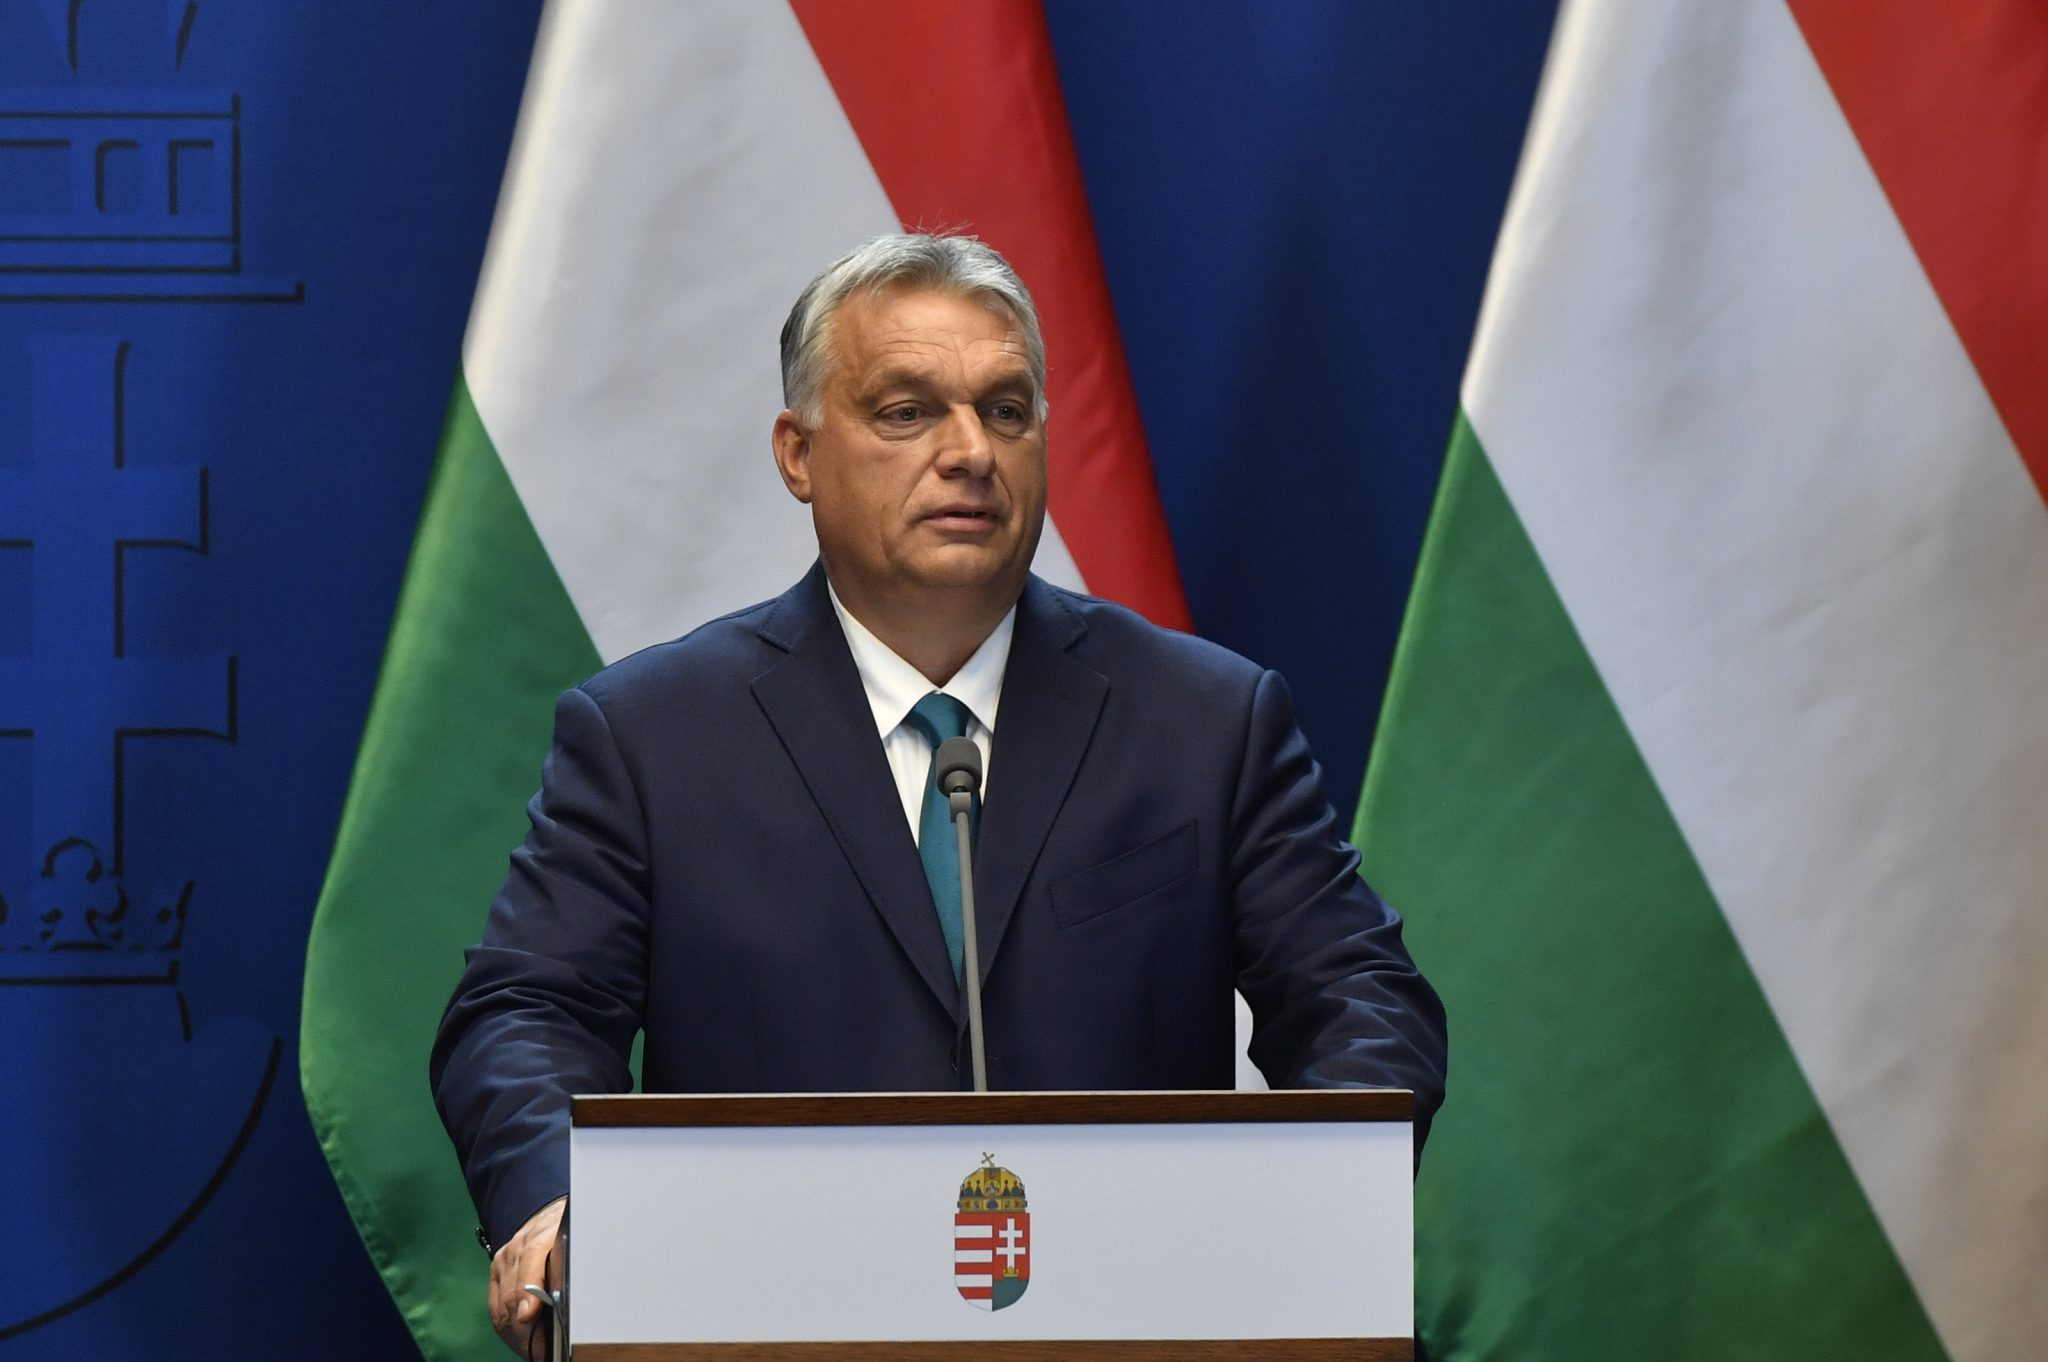 Hungary 'Better Prepared' For Pandemic Than In Spring, Say PM Orbán